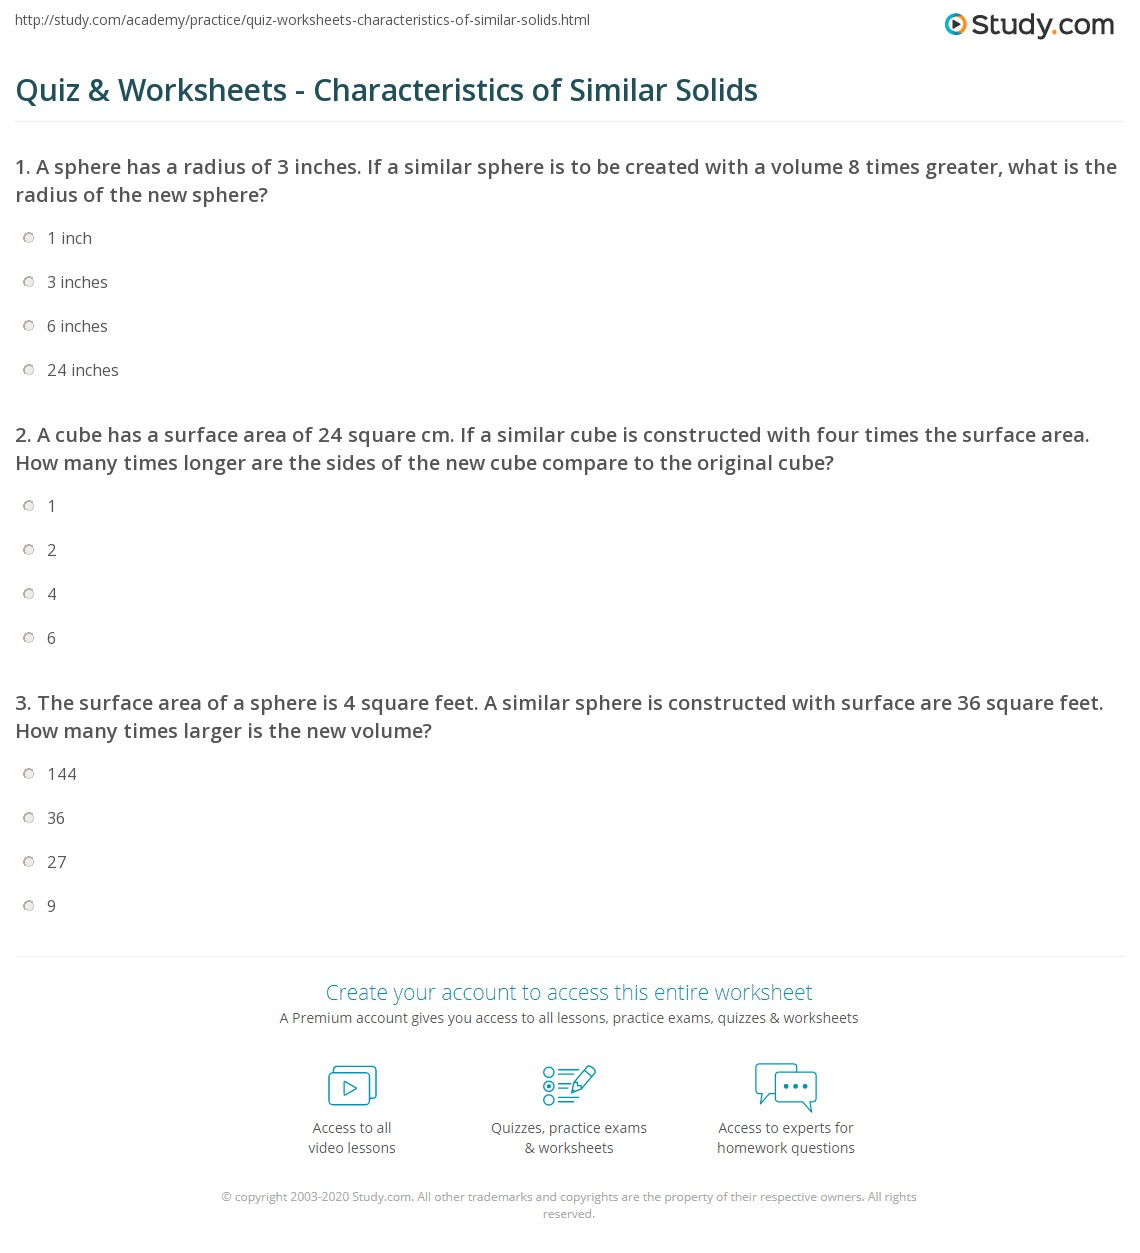 worksheet Volume Of Solids Worksheet quiz worksheets characteristics of similar solids study com 1 a cube has surface area 24 square cm if is constructed with four times the how many longe